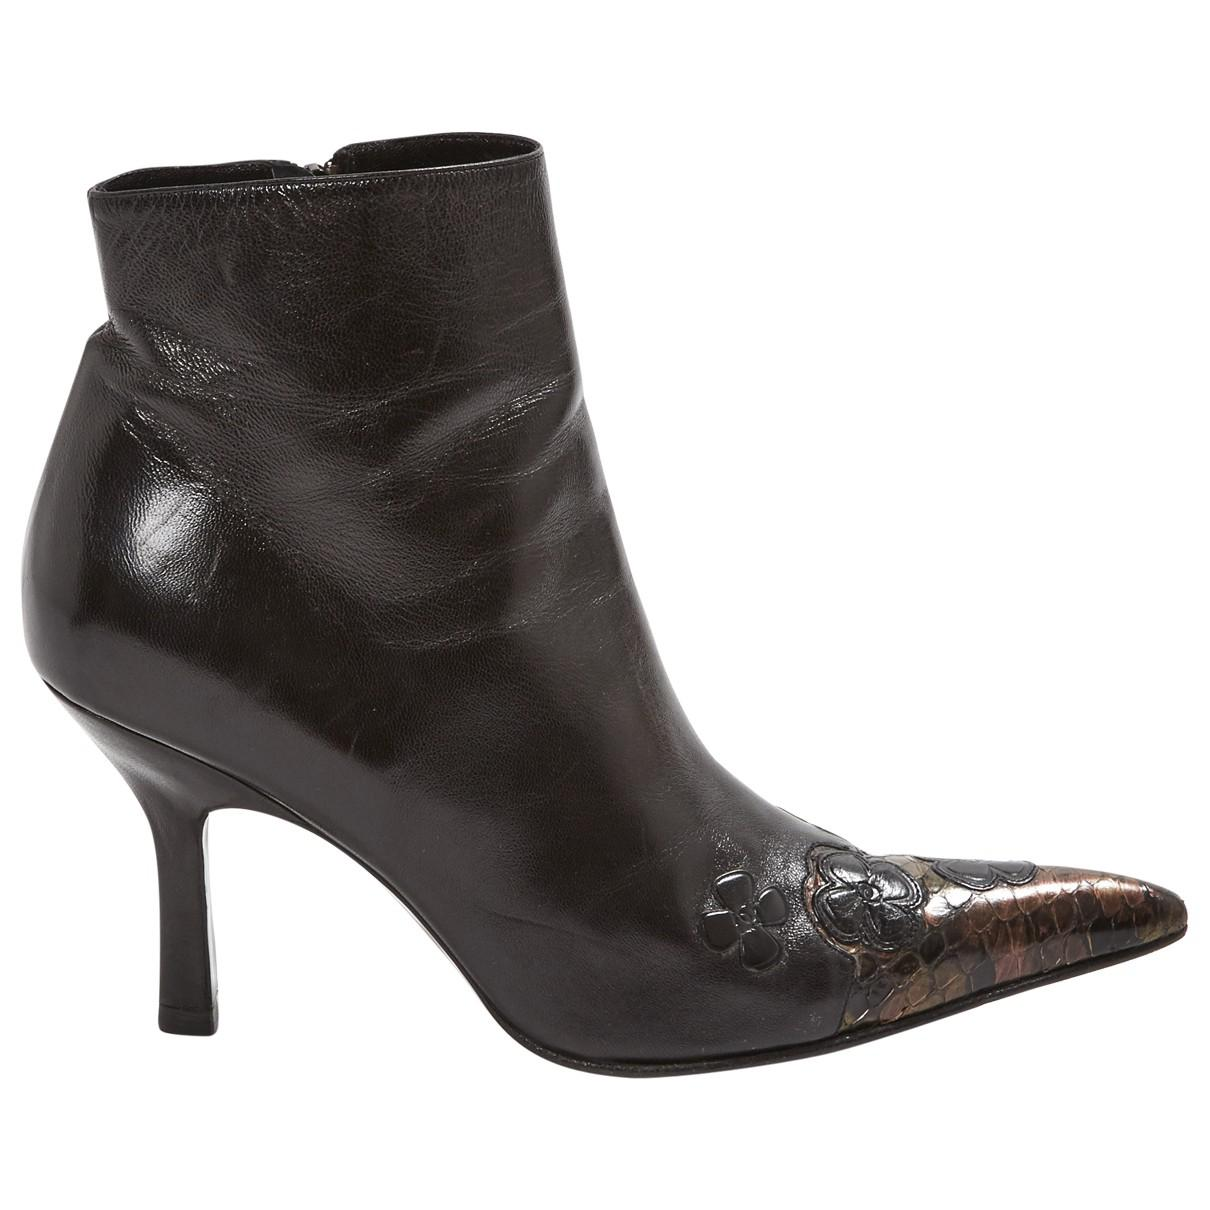 Pre-owned - Leather ankle boots Chanel loLff67unE